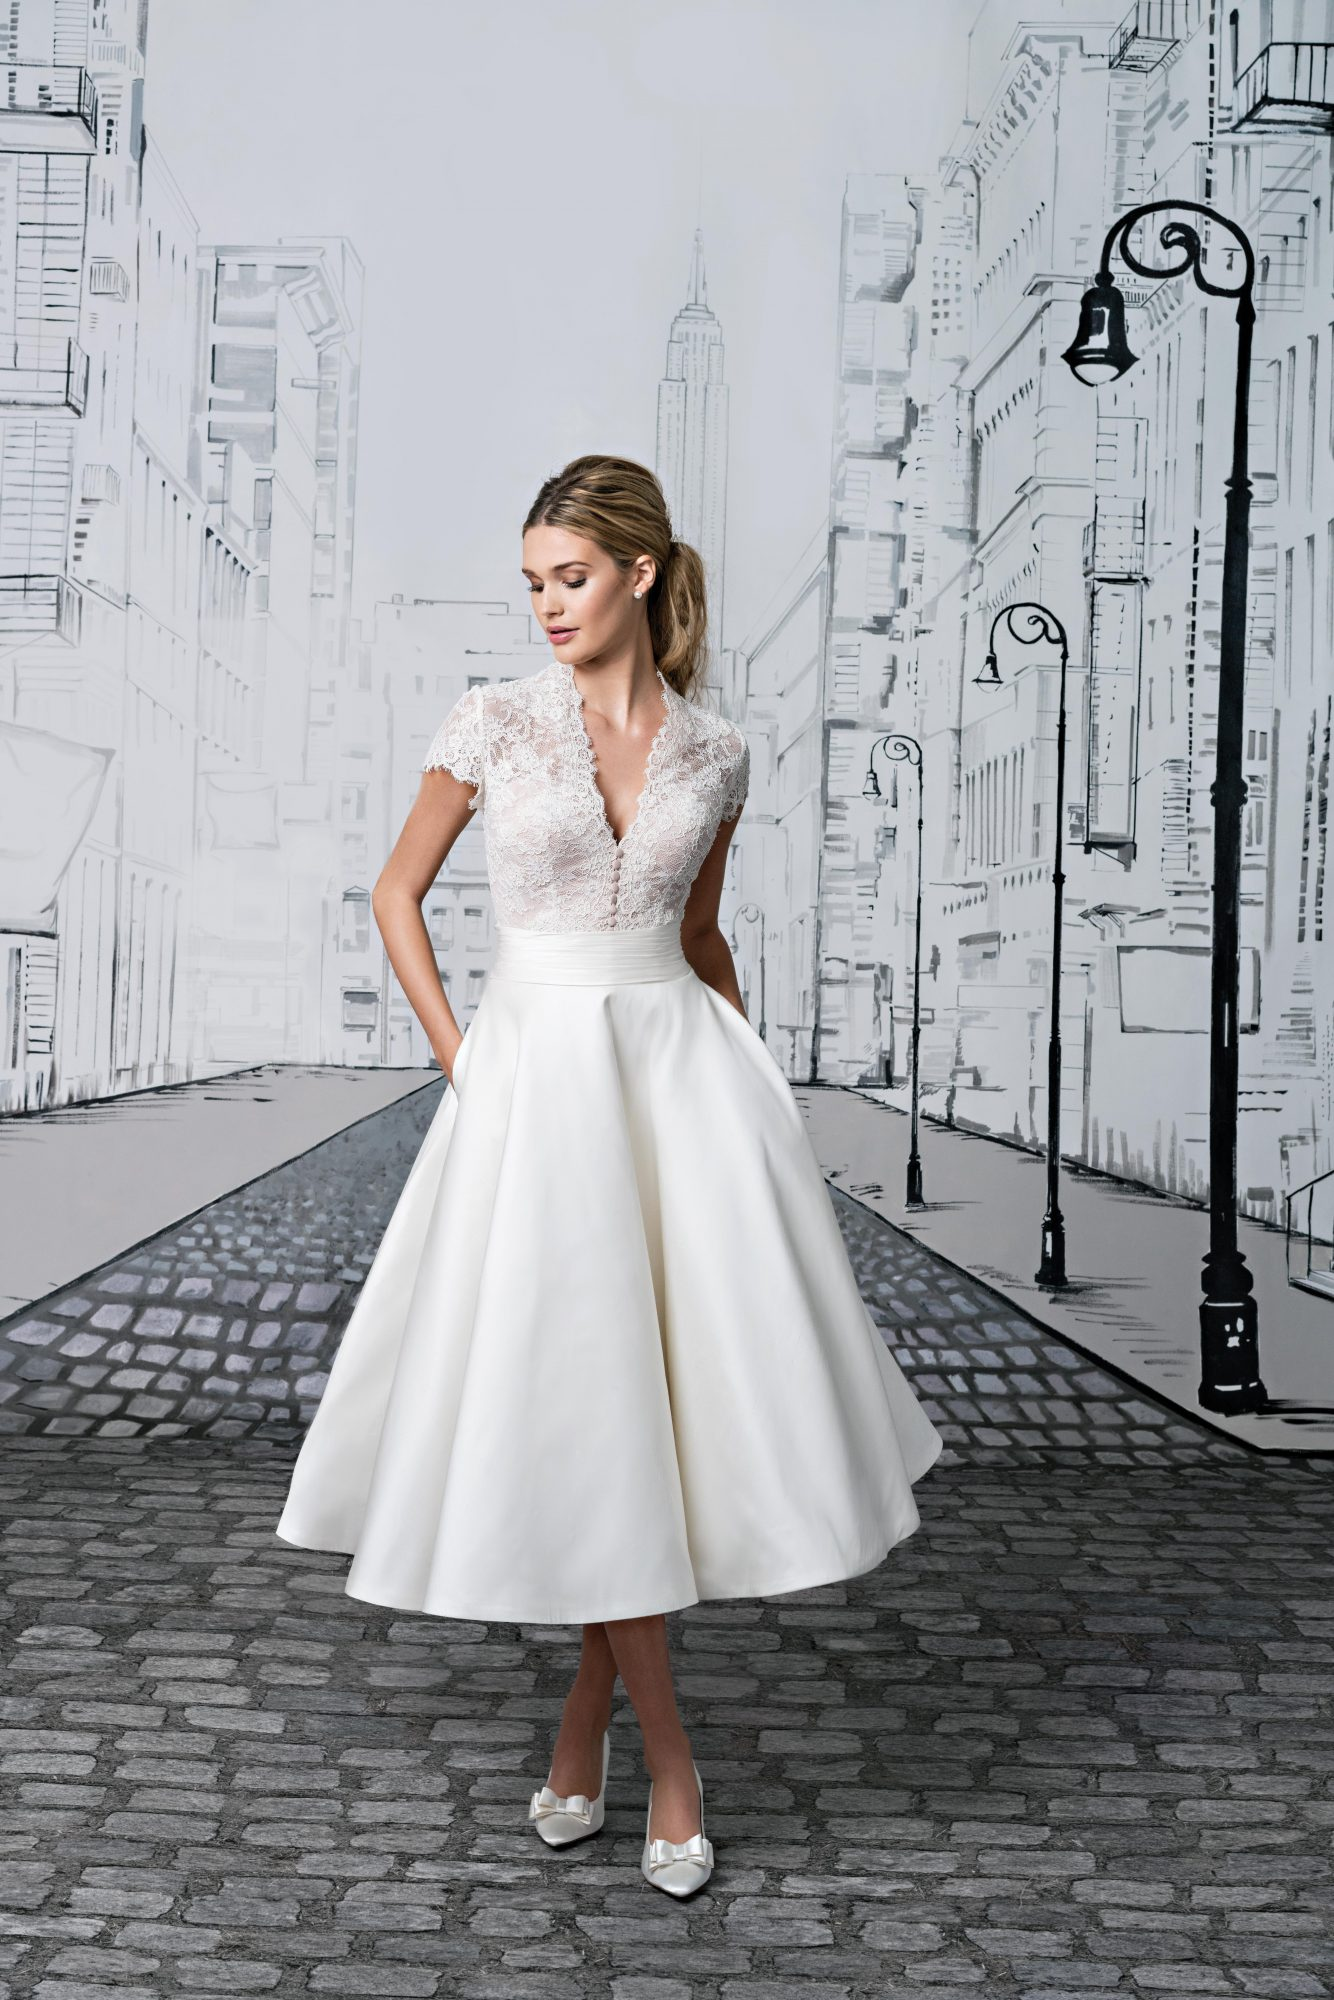 Get the Look: Grace Kelly-Inspired Wedding Dress